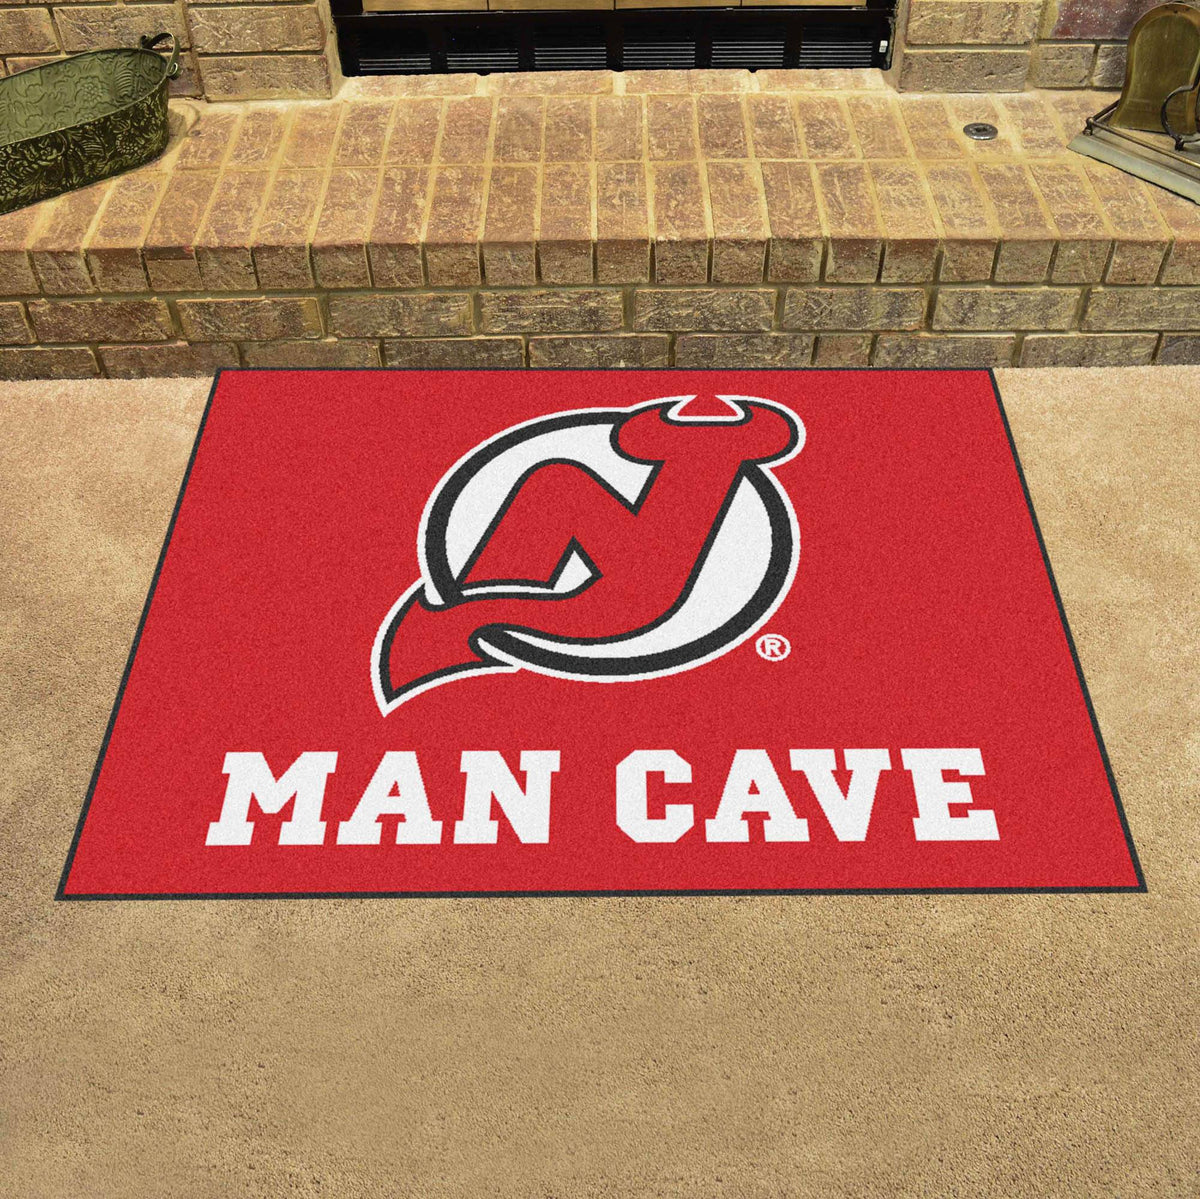 NHL - Man Cave All-Star NHL Mats, Rectangular Mats, Man Cave All-Star Mat, NHL, Home Fan Mats New Jersey Devils